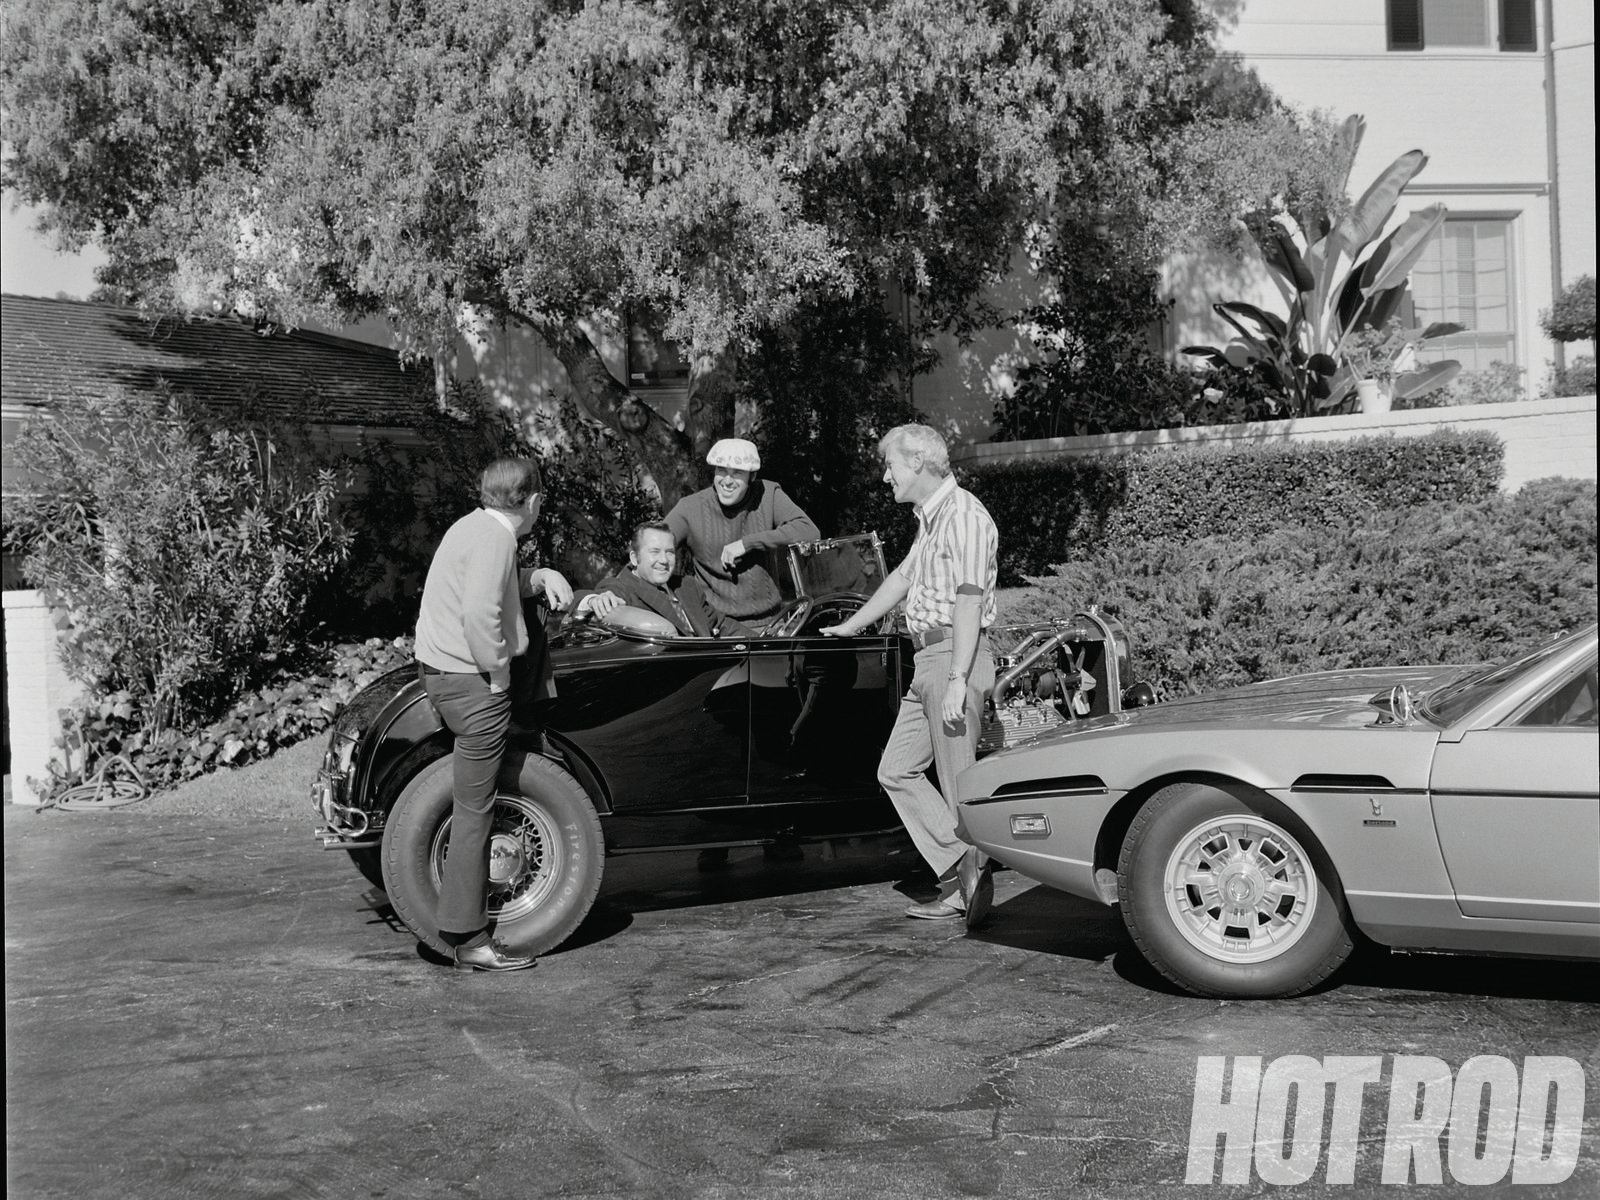 While Pete owed his start to hot rods, he was far more interested in outdoorsmanship. We have very few photos of Petersen with hot rods. Here's one, though, shot in 1973 with Bud Bryan's roadster from Rod & Custom on the occasion of that magazine's 20th anniversary. That's Tom Medley on the left, Petersen at the wheel, editor Bud Bryan, and R&C's first editor Spence Murray.